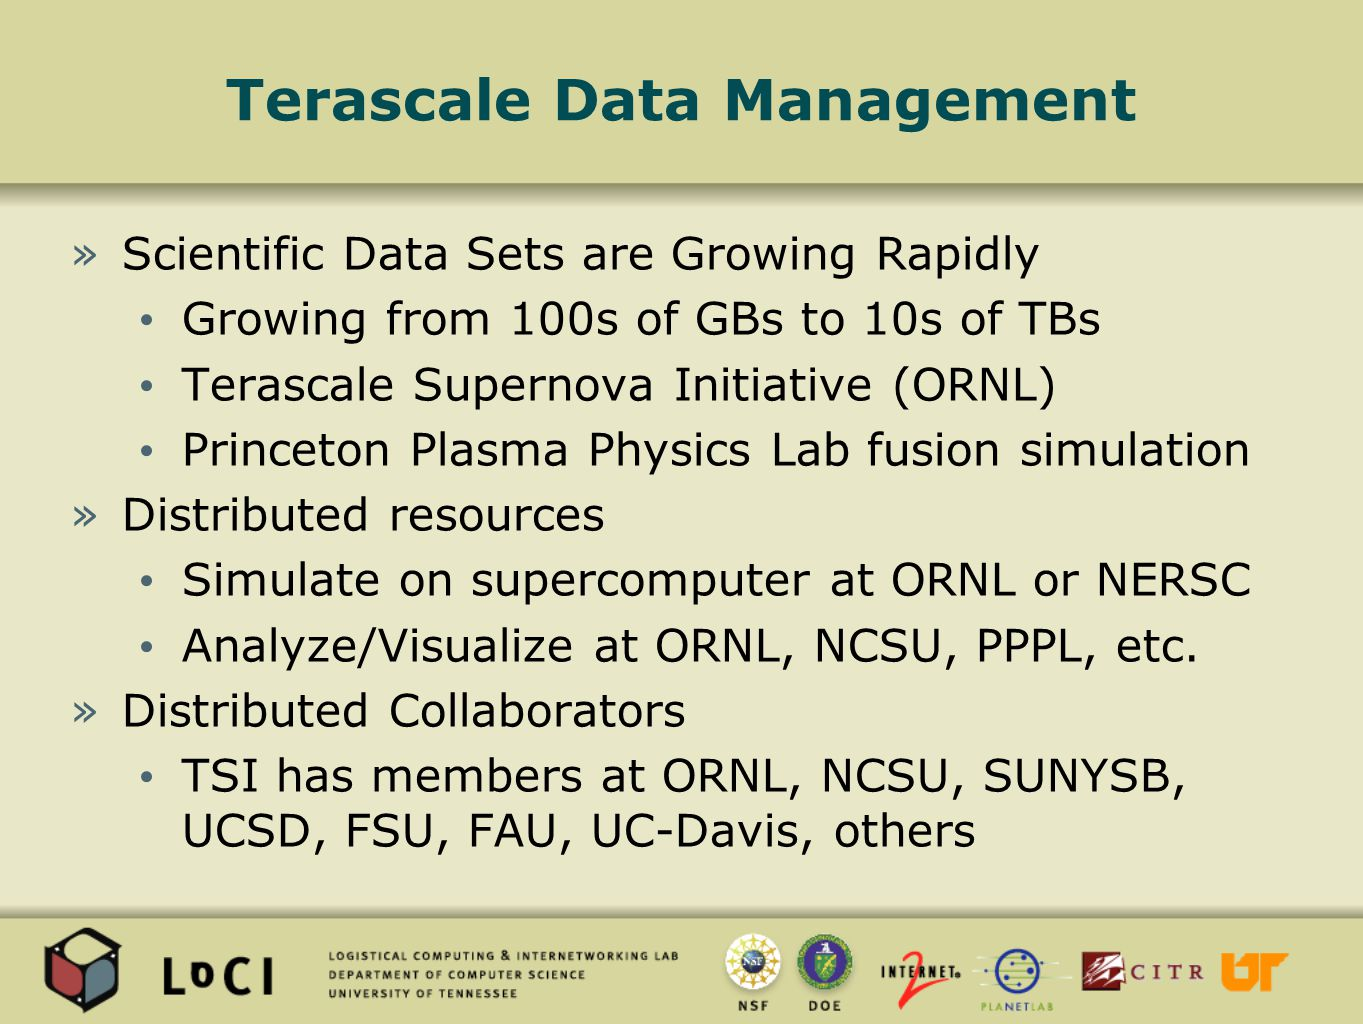 Terascale Data Management »Scientific Data Sets are Growing Rapidly Growing from 100s of GBs to 10s of TBs Terascale Supernova Initiative (ORNL) Princeton Plasma Physics Lab fusion simulation »Distributed resources Simulate on supercomputer at ORNL or NERSC Analyze/Visualize at ORNL, NCSU, PPPL, etc.